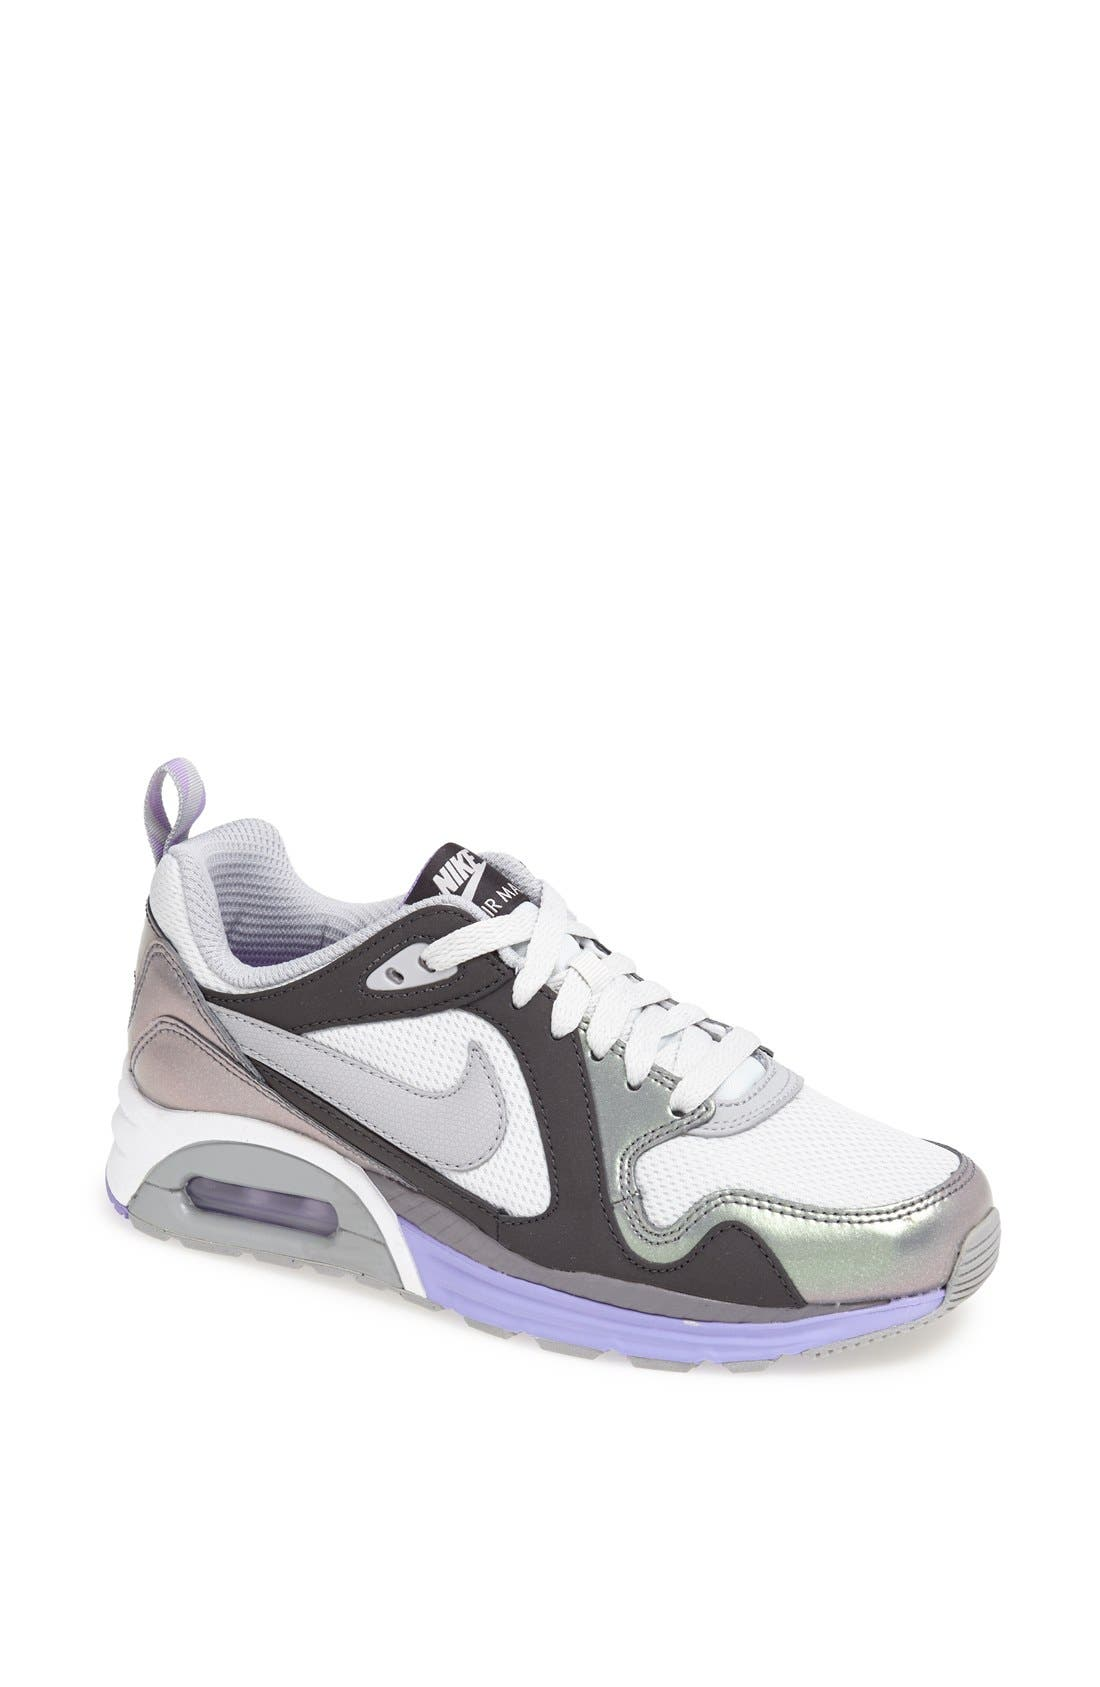 Alternate Image 1 Selected - Nike 'Aire Max Trax' Sneaker (Women)